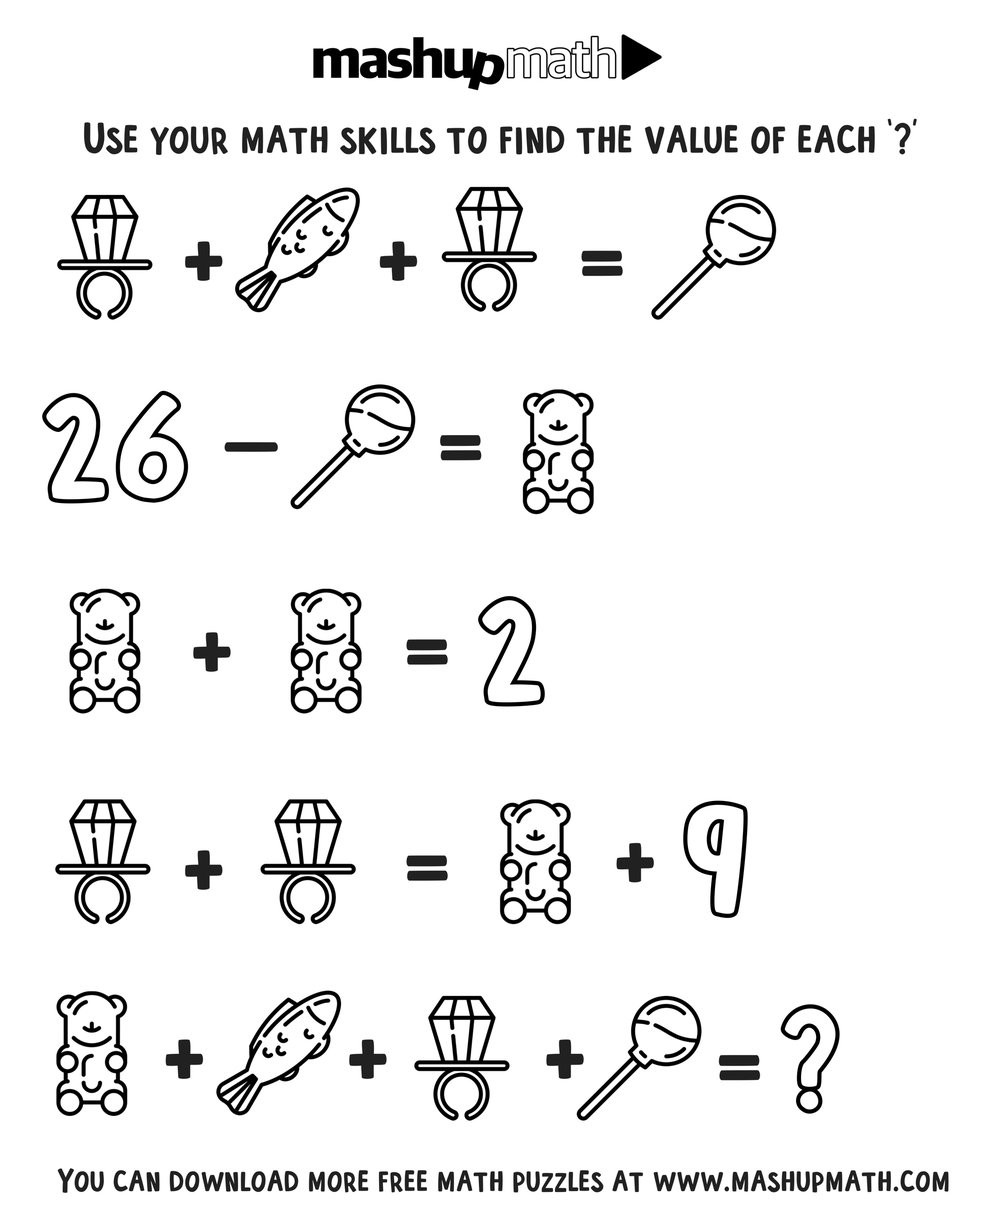 6th Grade Math Puzzles Pdf Free Math Coloring Worksheets for Grades 1 8 — Mashup Math